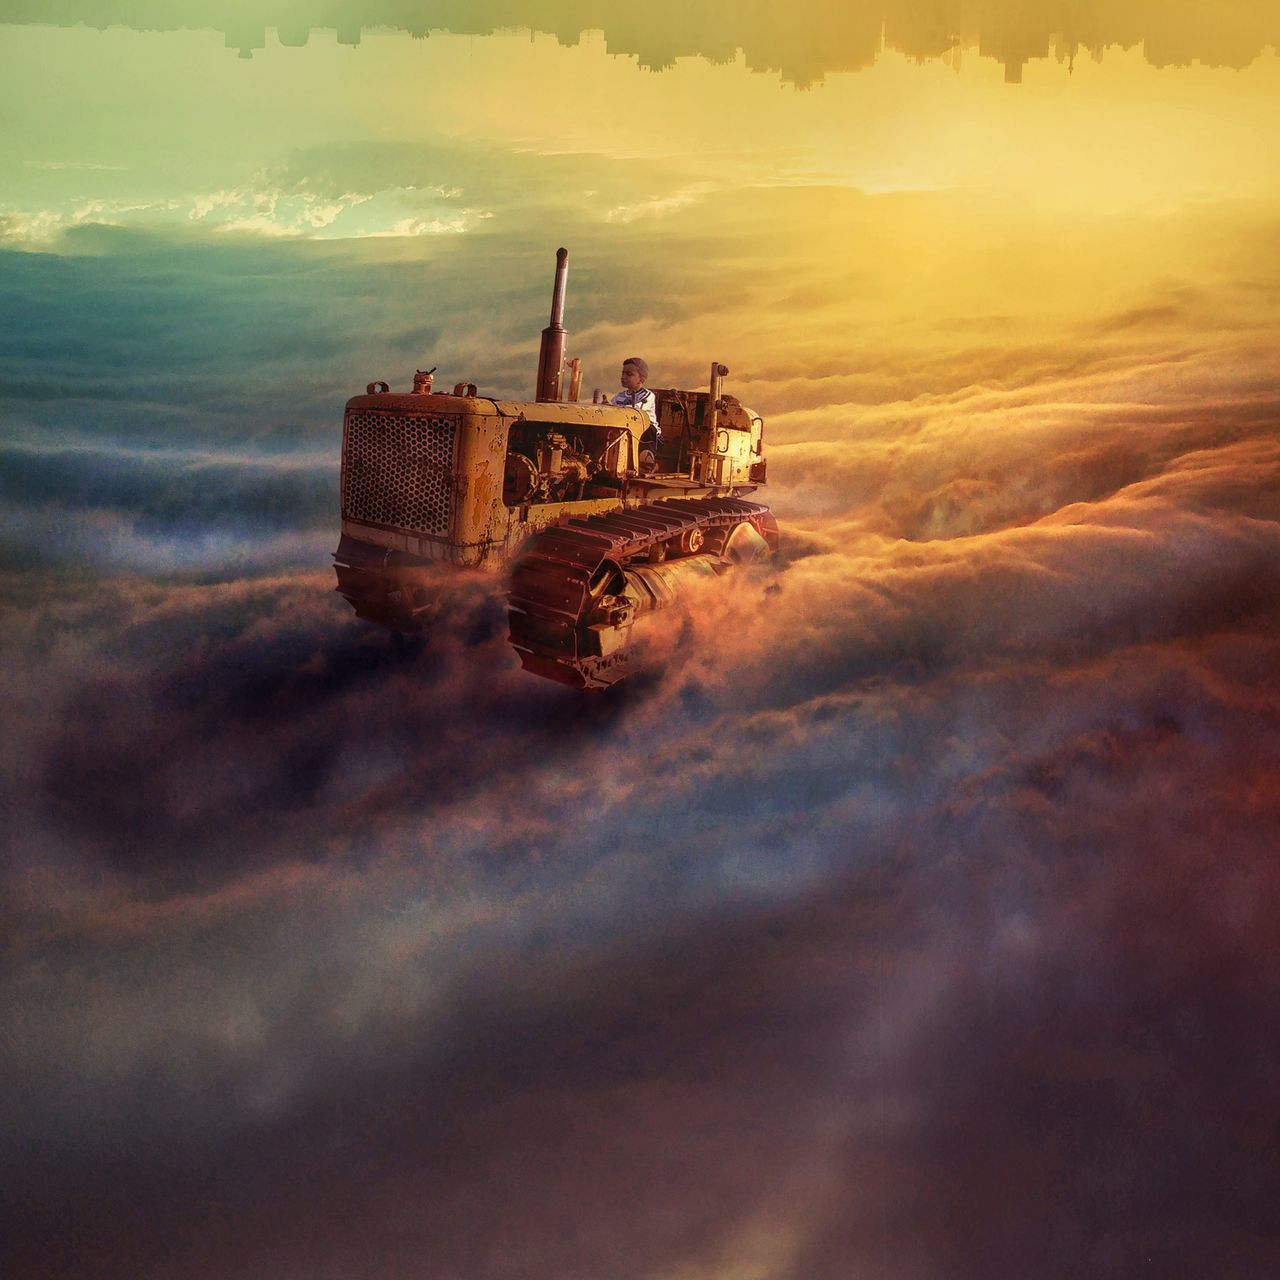 cloud - sky, sky, sunset, sea, nature, no people, outdoors, scenics, transportation, nautical vessel, abandoned, water, beauty in nature, architecture, building exterior, horizon over water, day, drilling rig